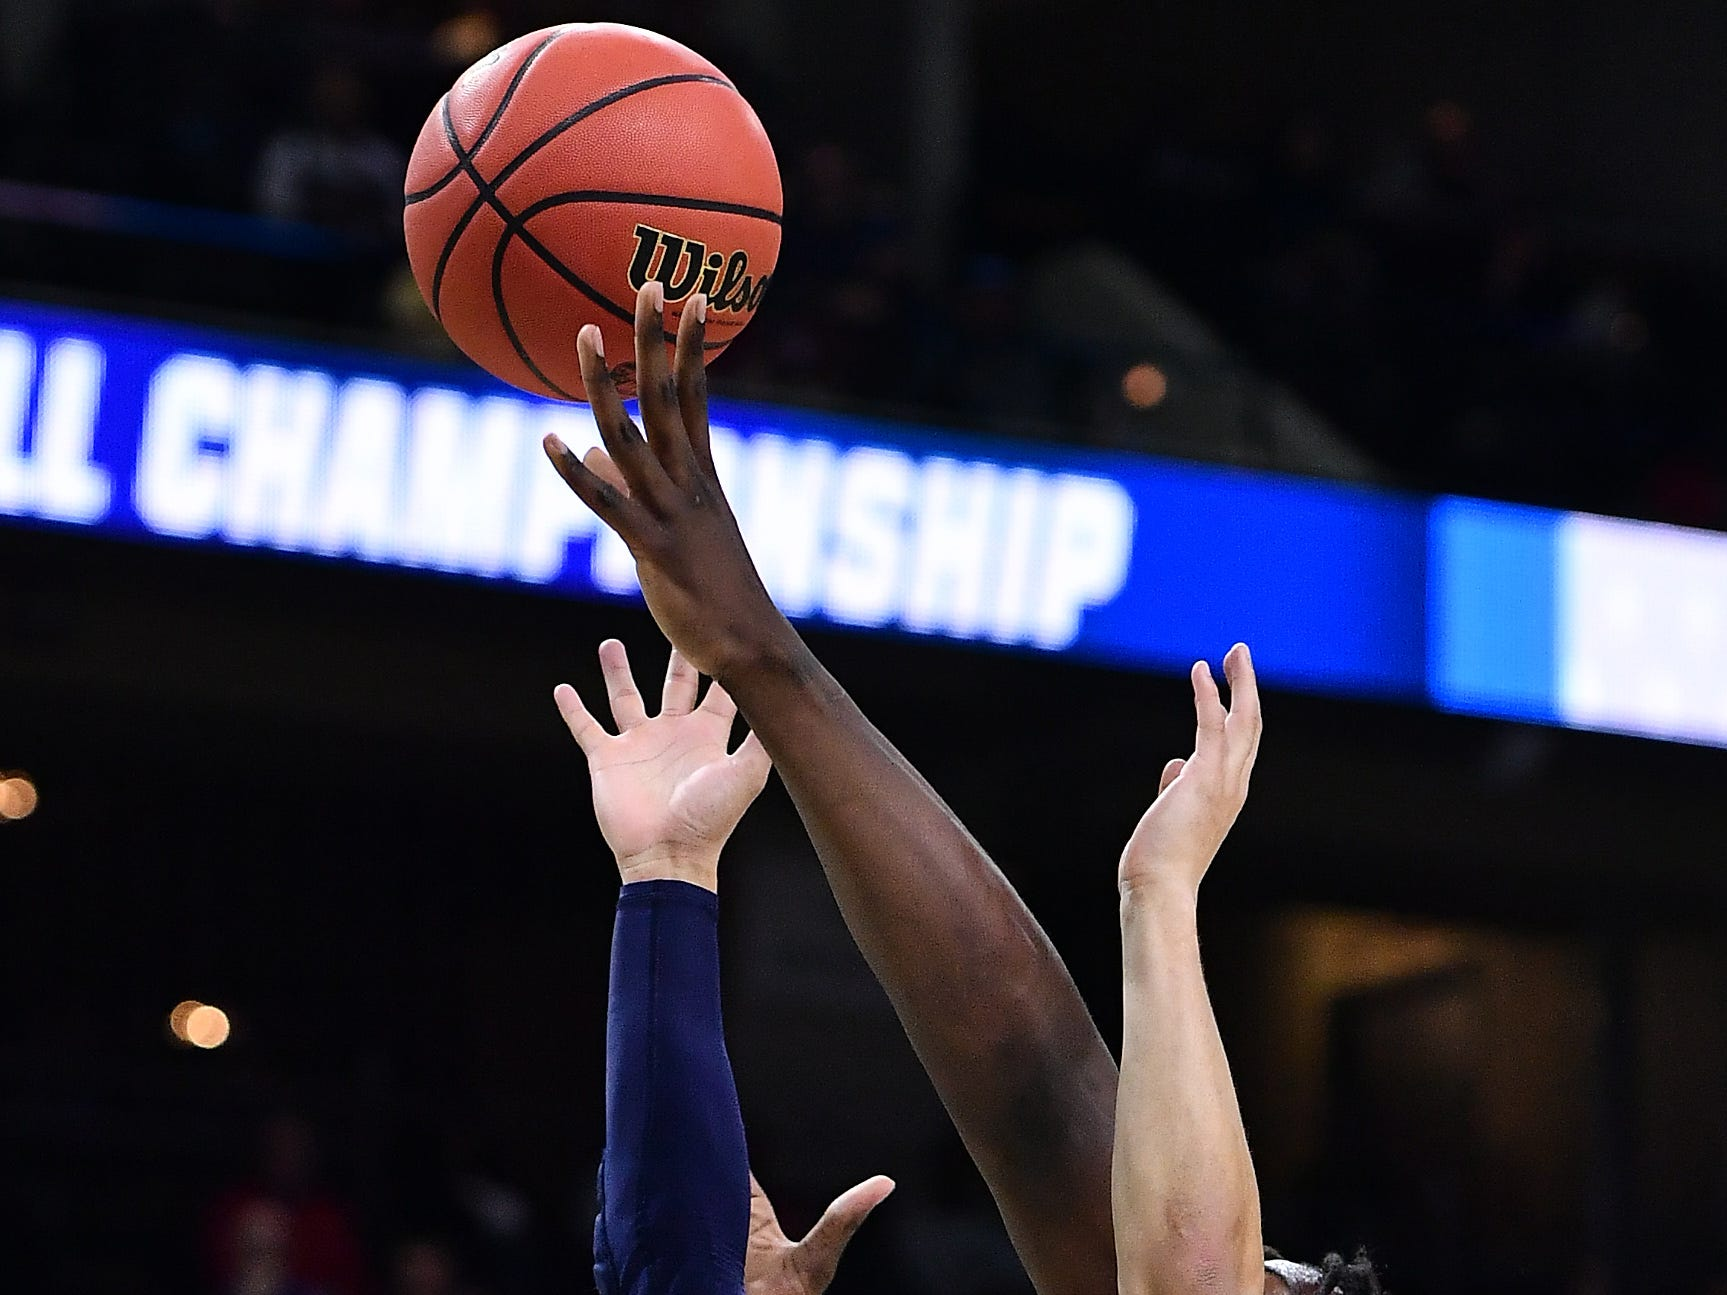 Mar 21, 2019; Jacksonville, FL, USA; Yale Bulldogs guard Alex Copeland (3) battles LSU Tigers forward Naz Reid (right) for a rebound during the first half in the first round of the 2019 NCAA Tournament at Jacksonville Veterans Memorial Arena. Mandatory Credit: John David Mercer-USA TODAY Sports